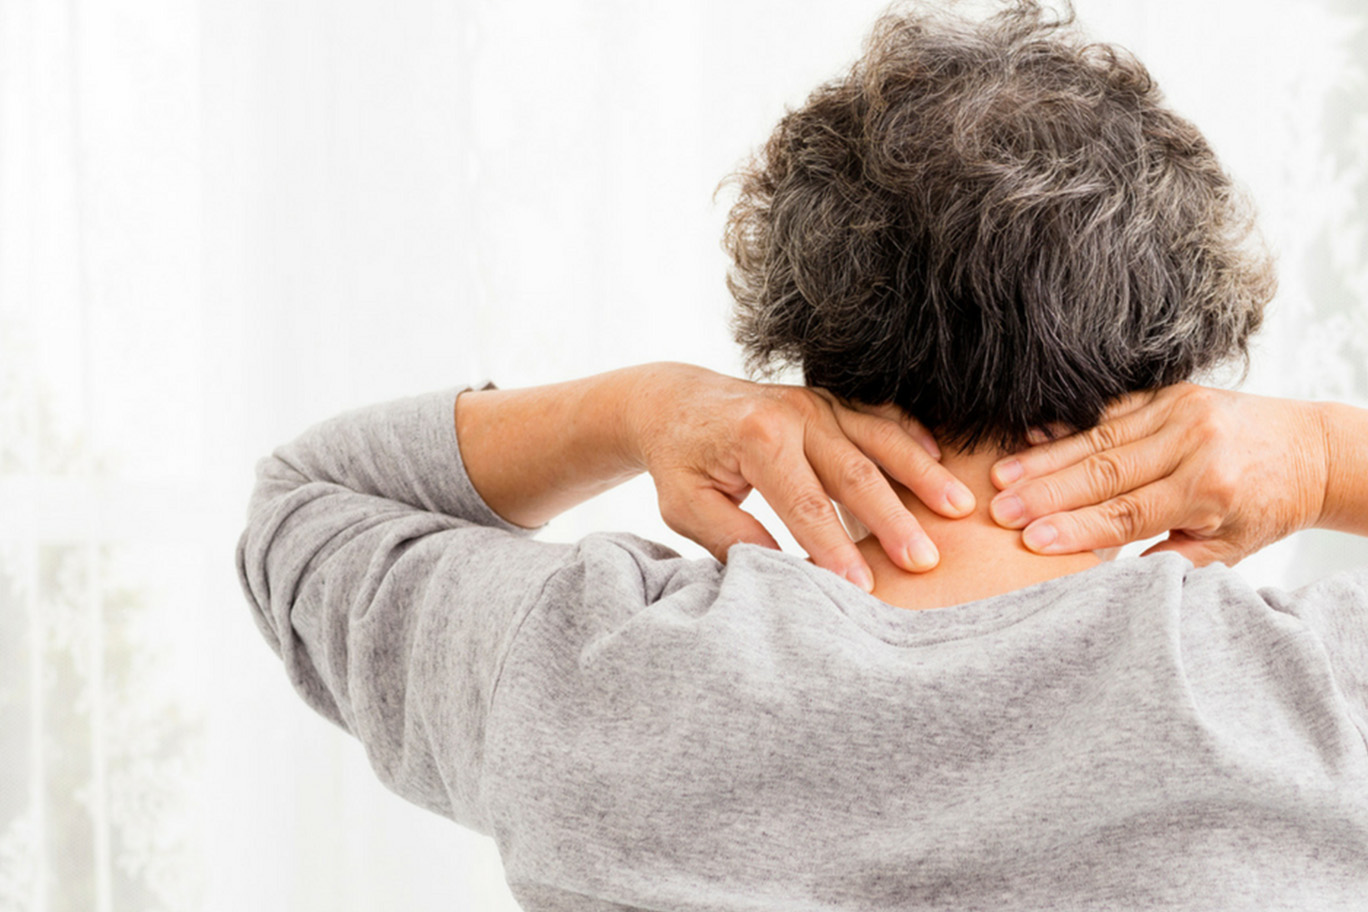 Chiropractic Treatment for Headaches & Neck pain in Surprise AZ